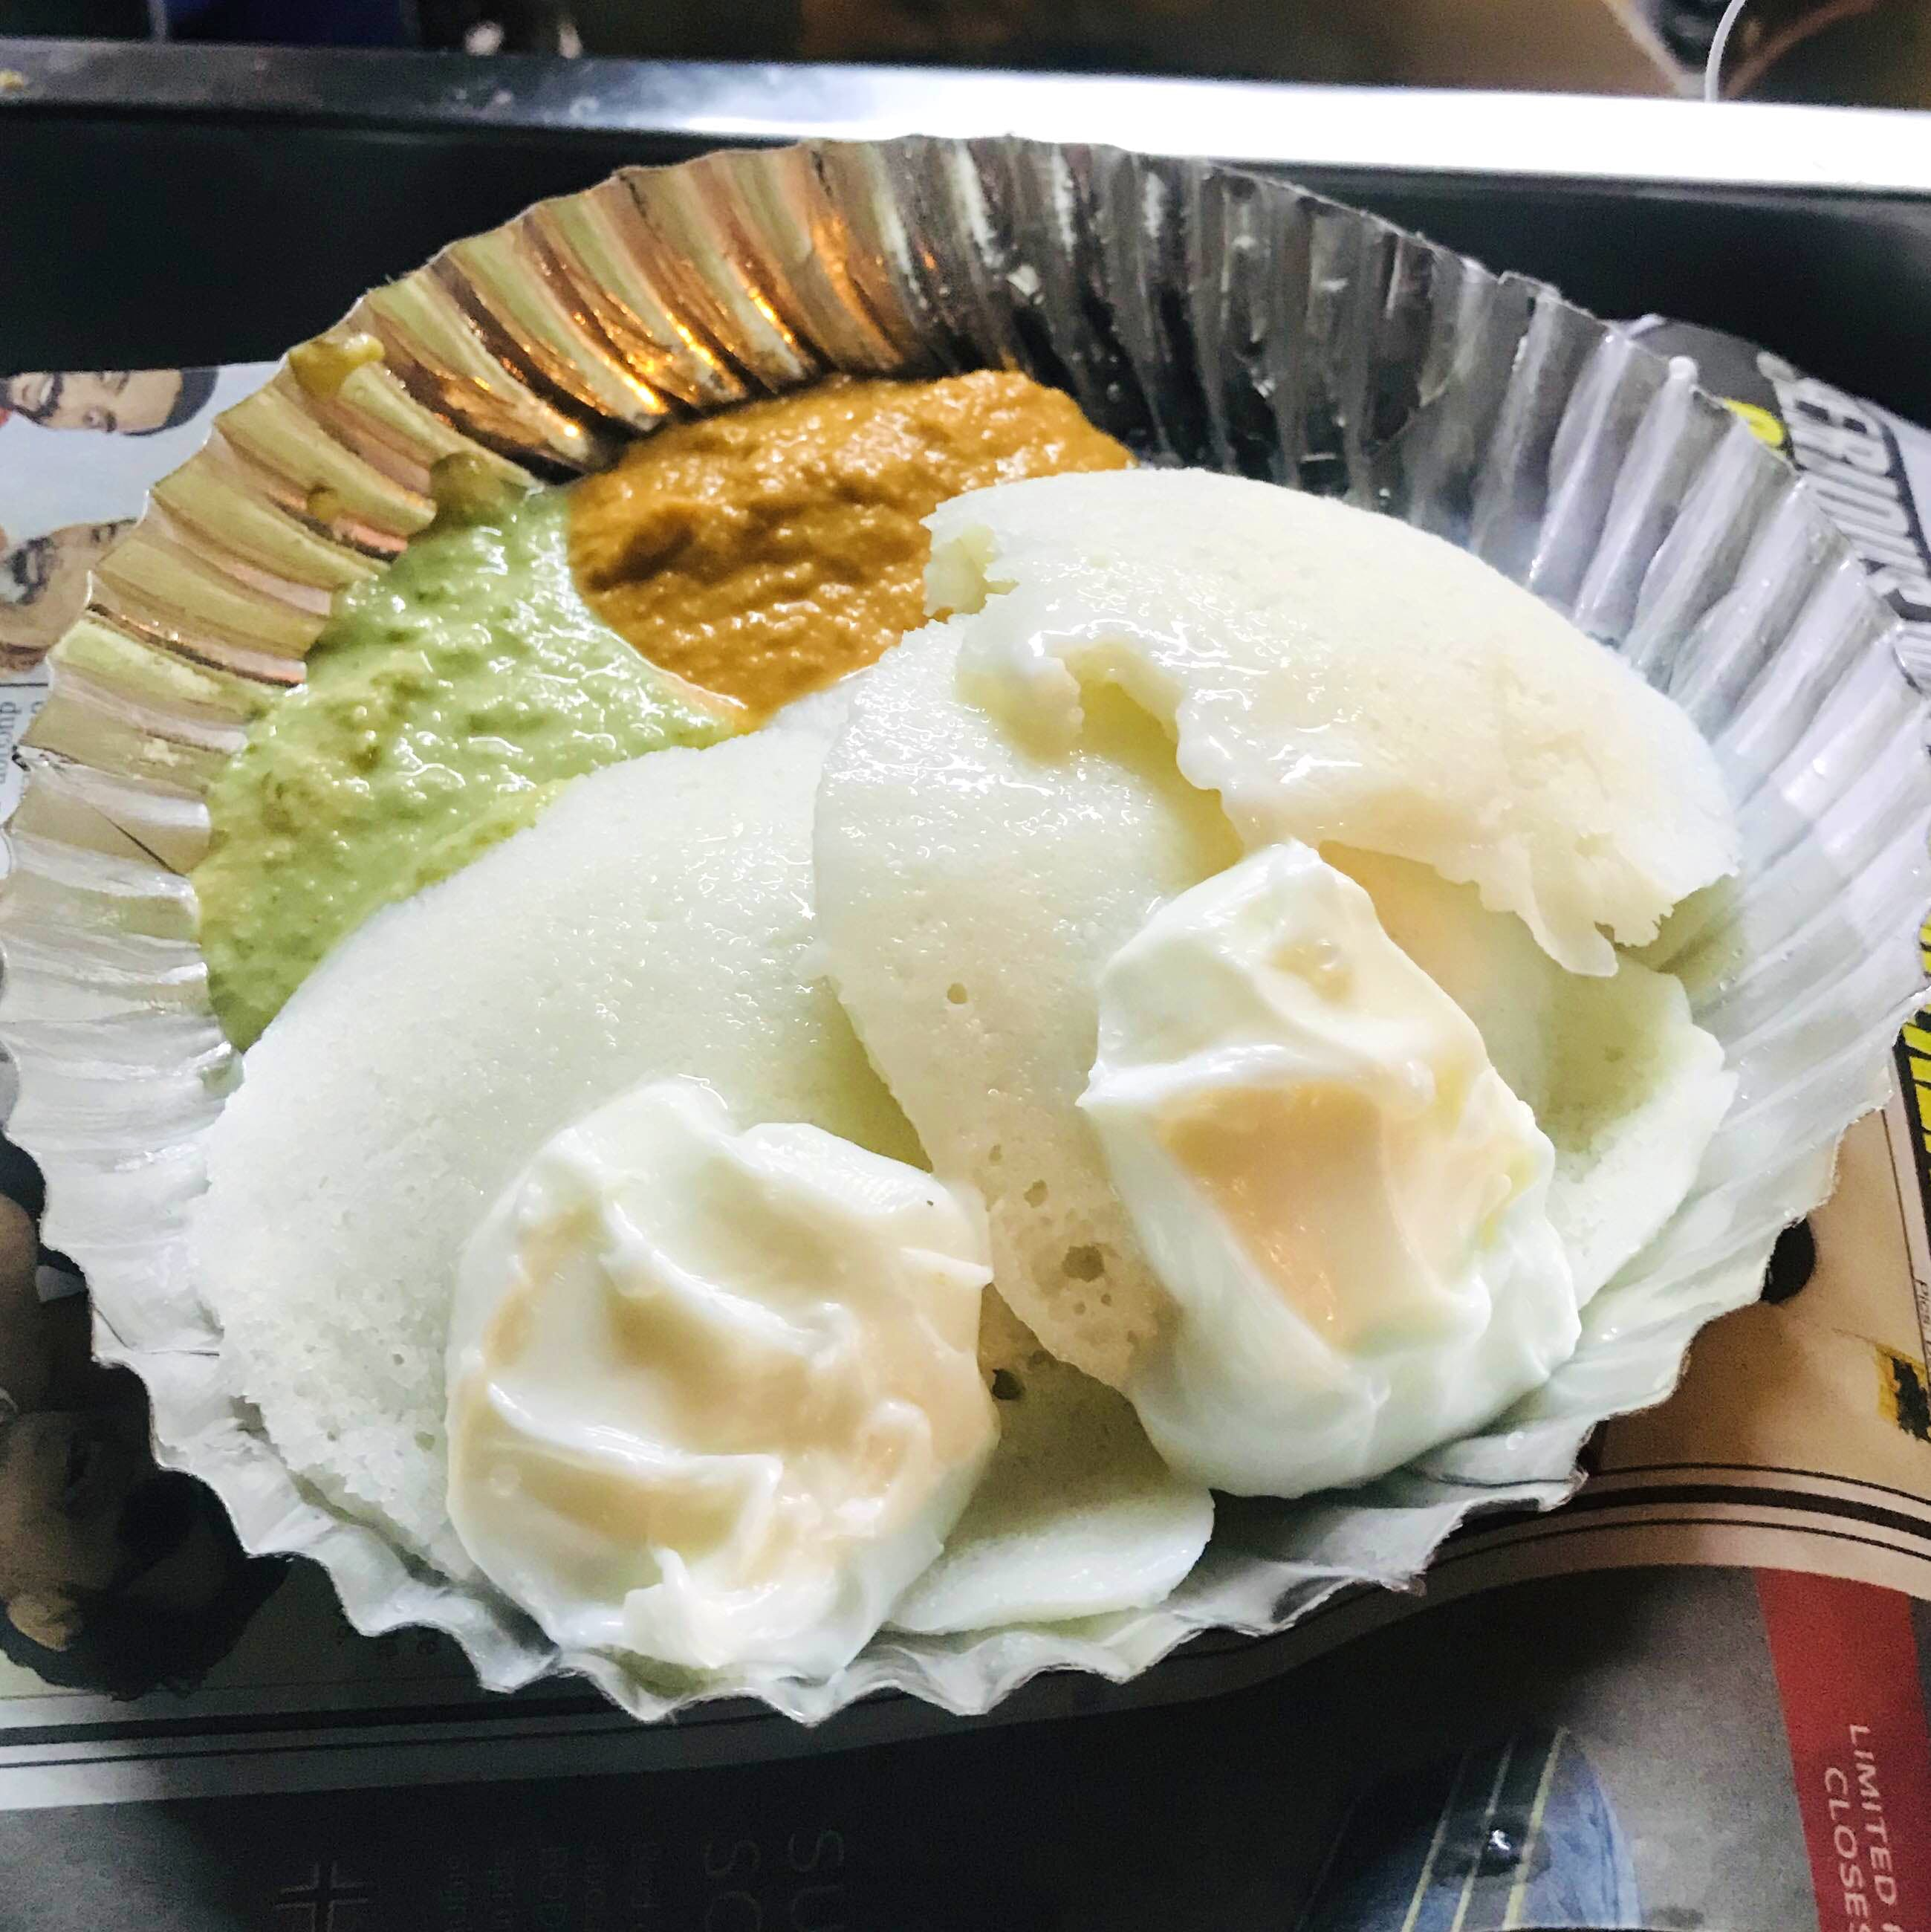 Shree Idli Corner: A dope place for Steaming Hot idli with butter